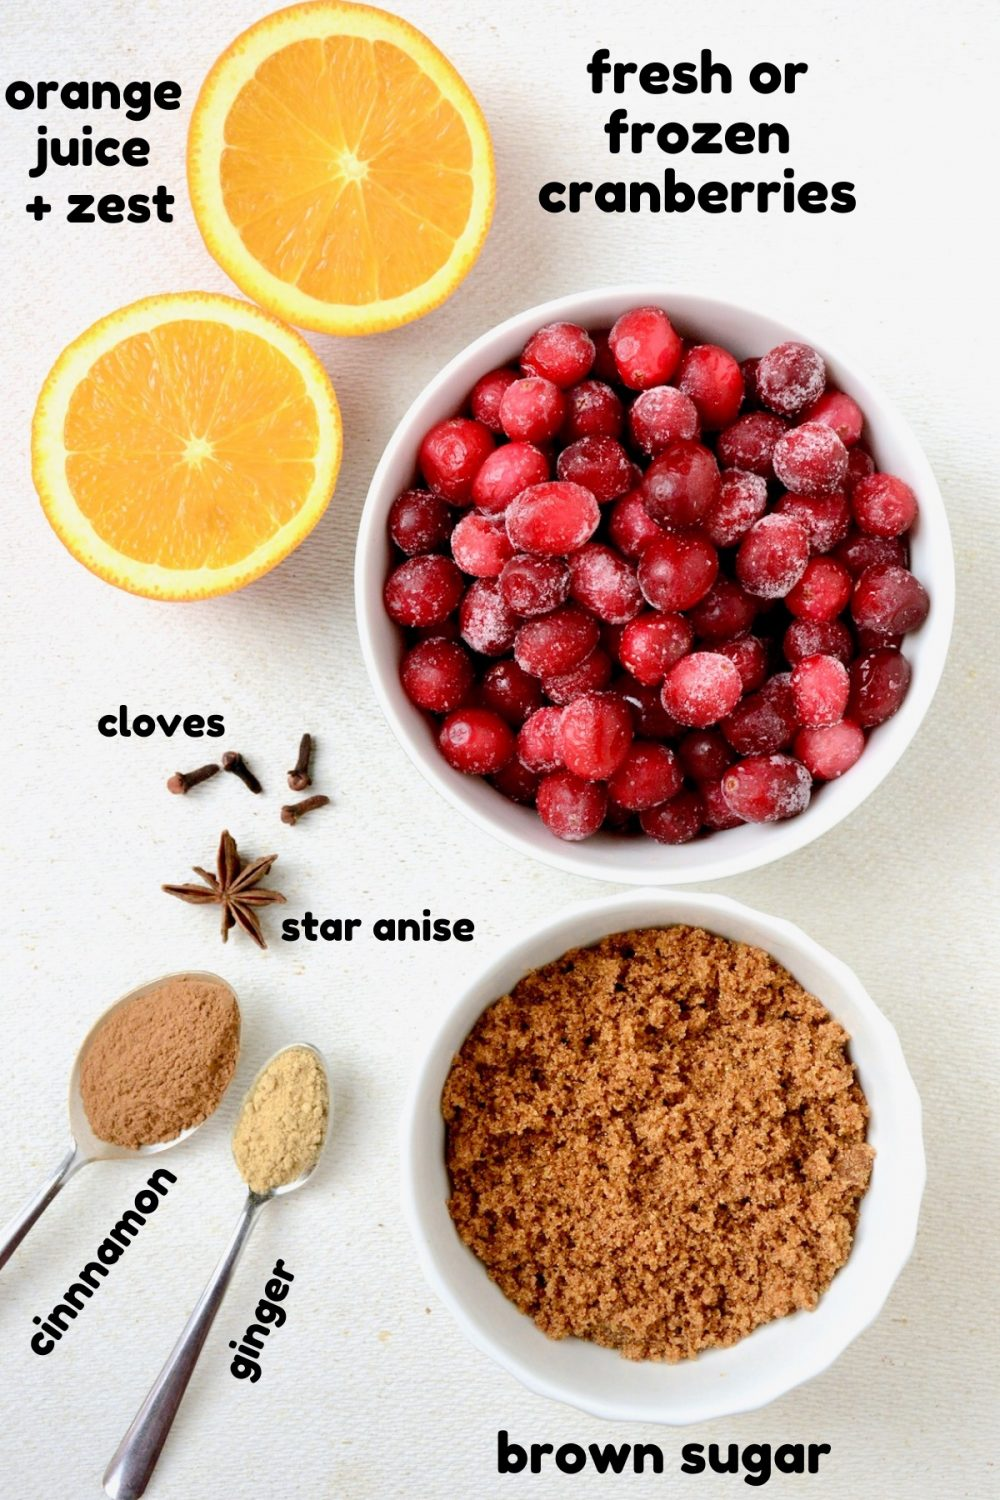 Cranberry sauce ingredients on a white board - frozen cranberries, orange juice and zest, clove, star anise, cinnamon, ginger and brown sugar.